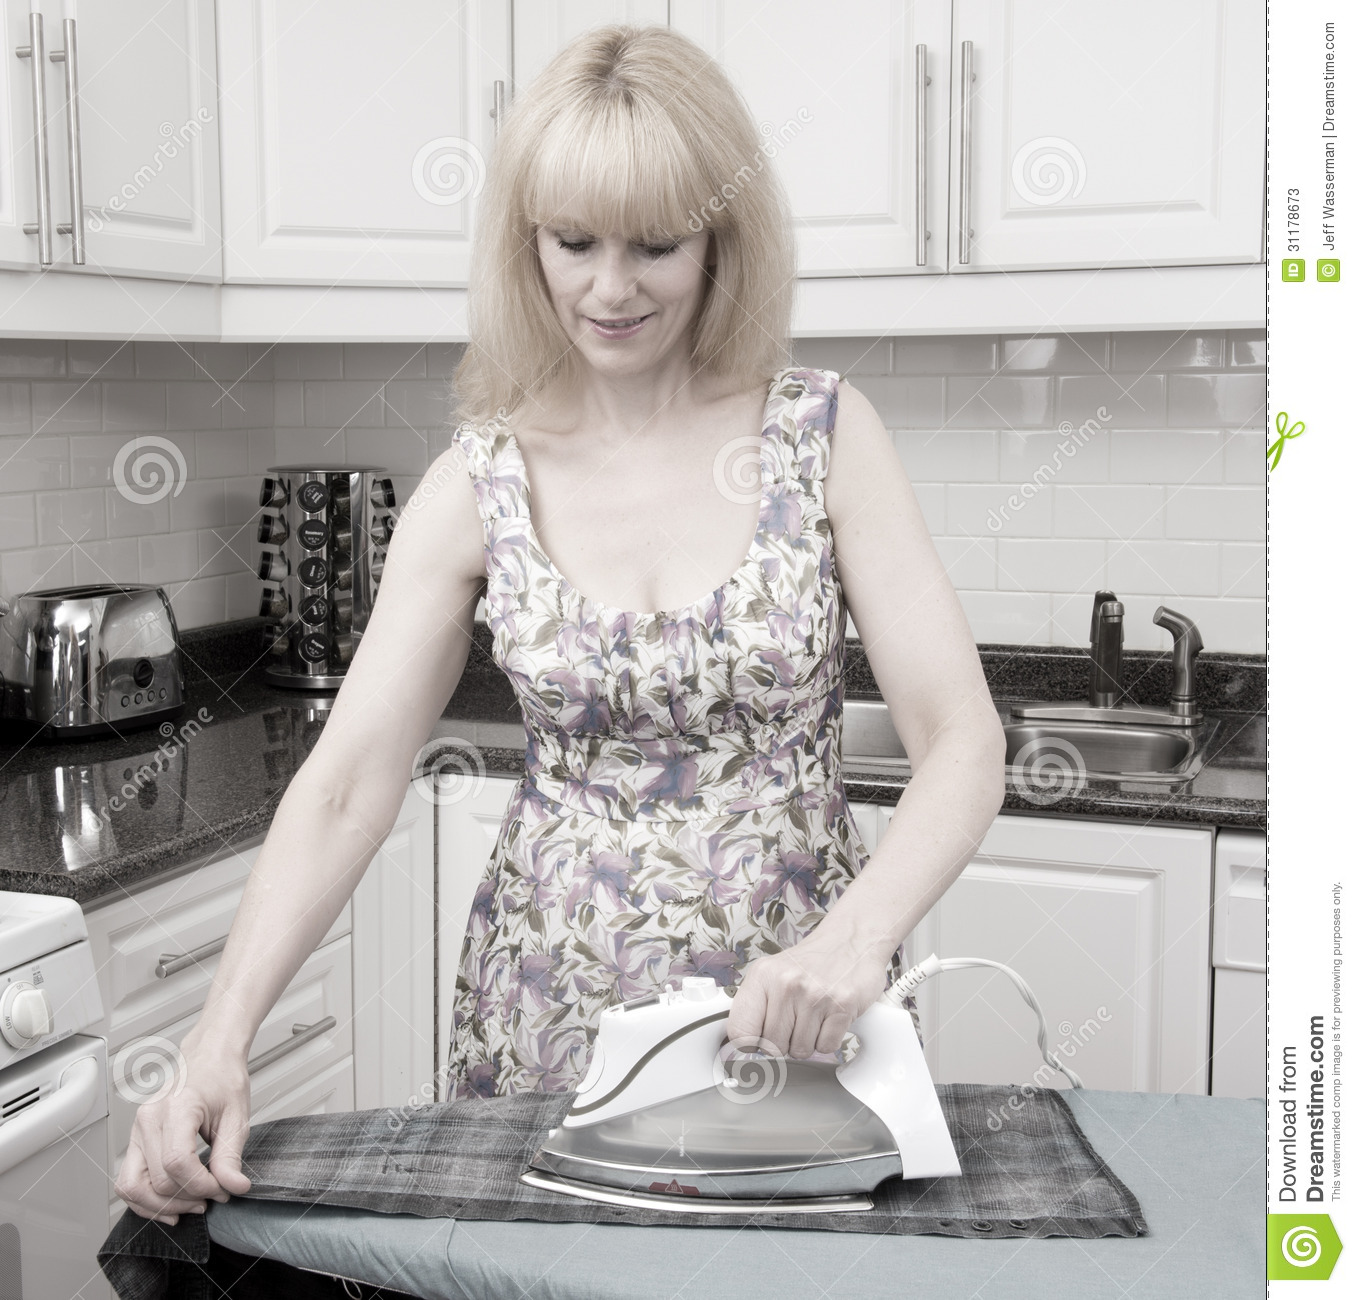 Retro Woman In Kitchen: Old Time Ironing! Stock Photos